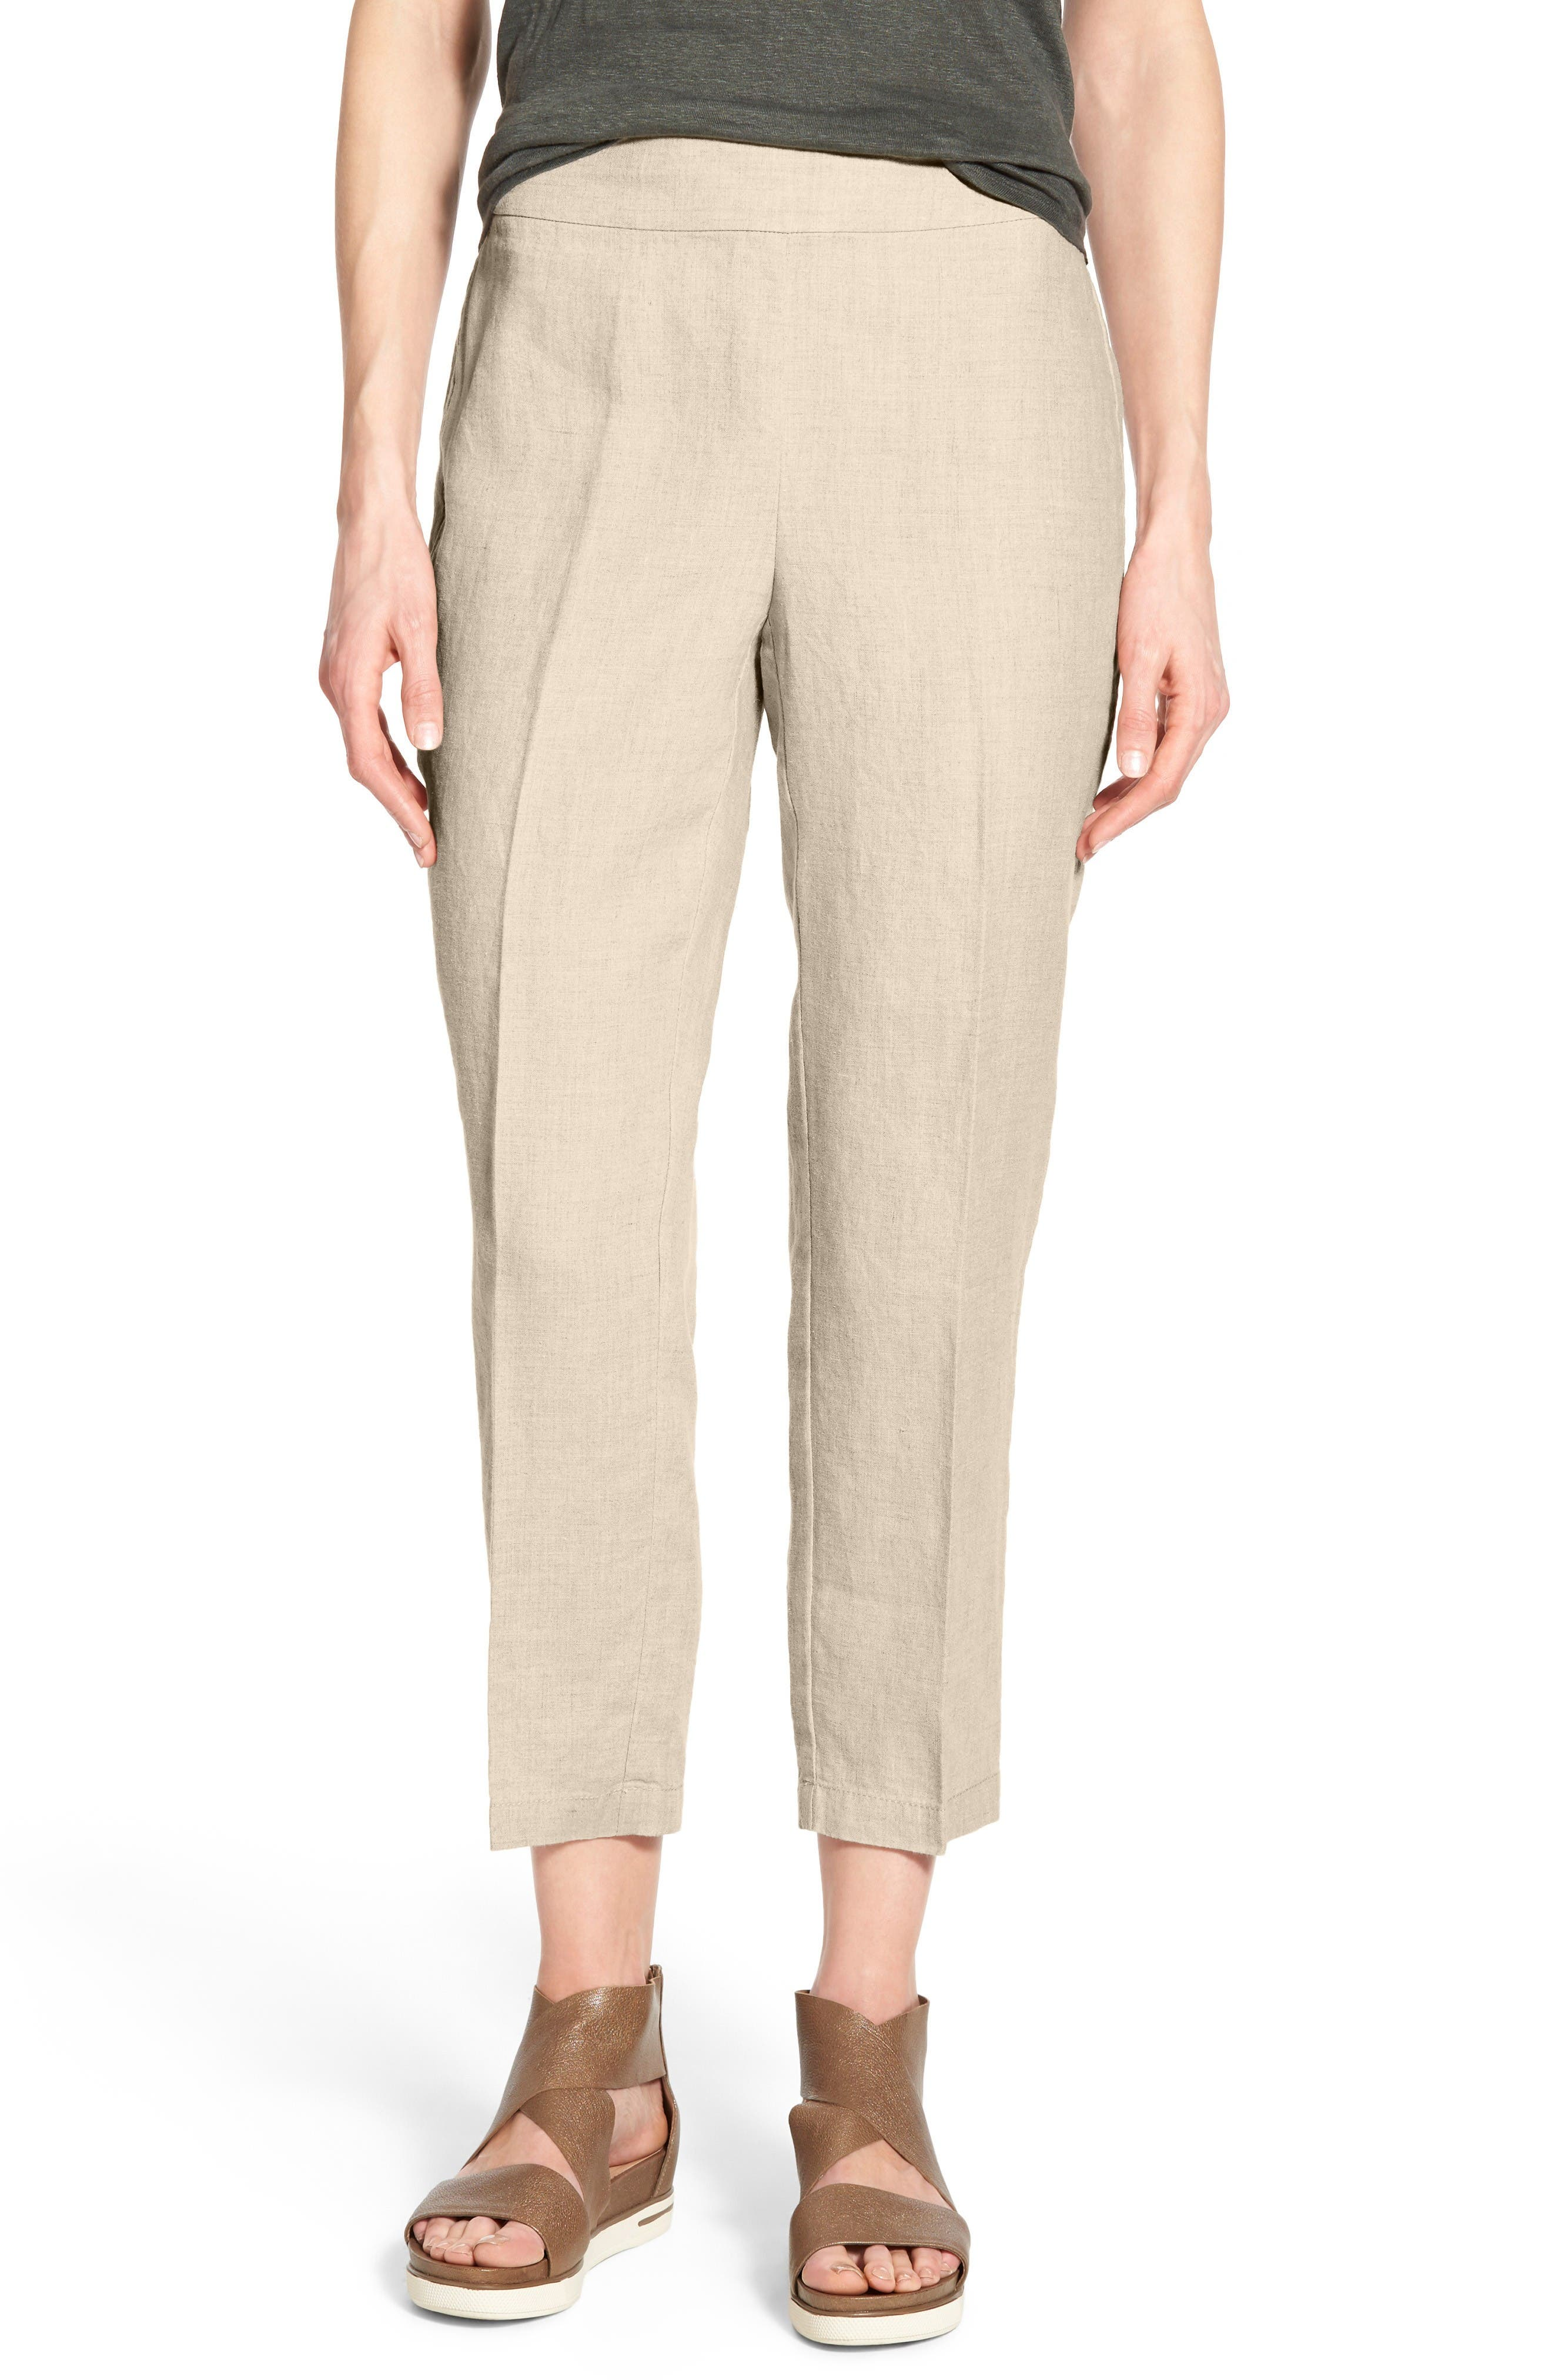 Alternate Image 1 Selected - Eileen Fisher Organic Linen Crop Pants (Regular & Petite) (Nordstrom Exclusive)